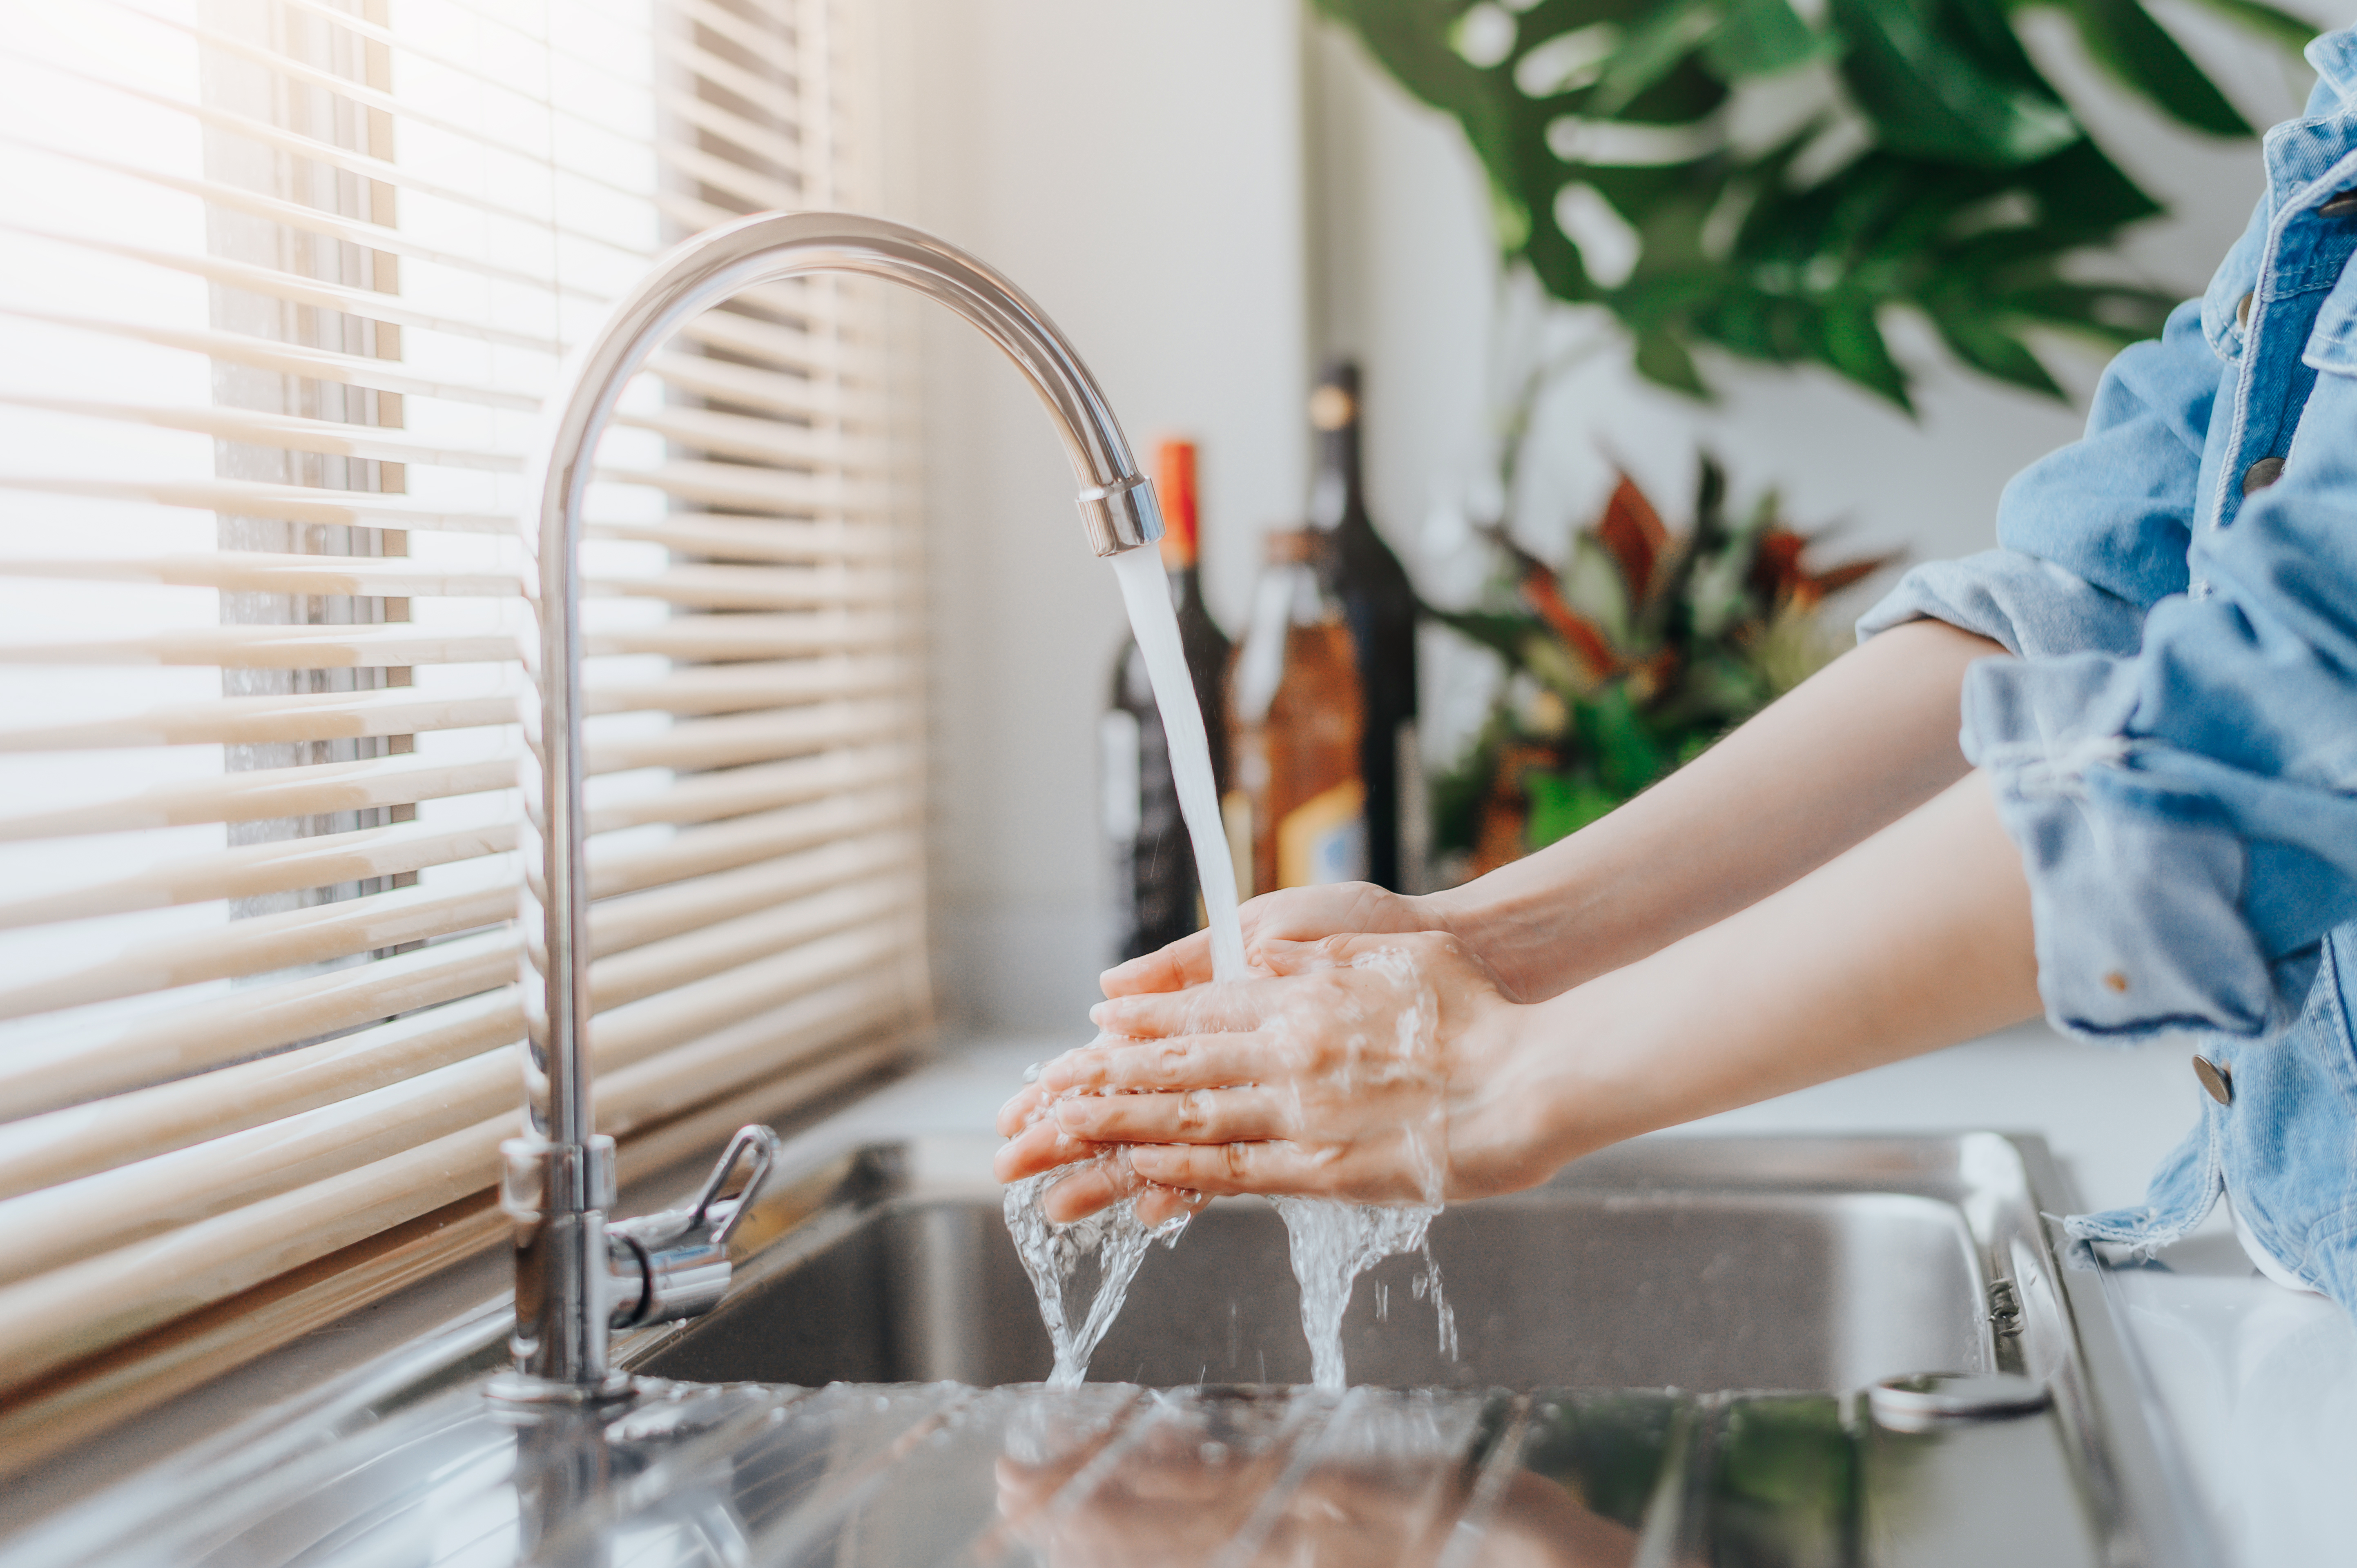 Cropped Image Of Woman Washing Hands At Sink In Kitchen